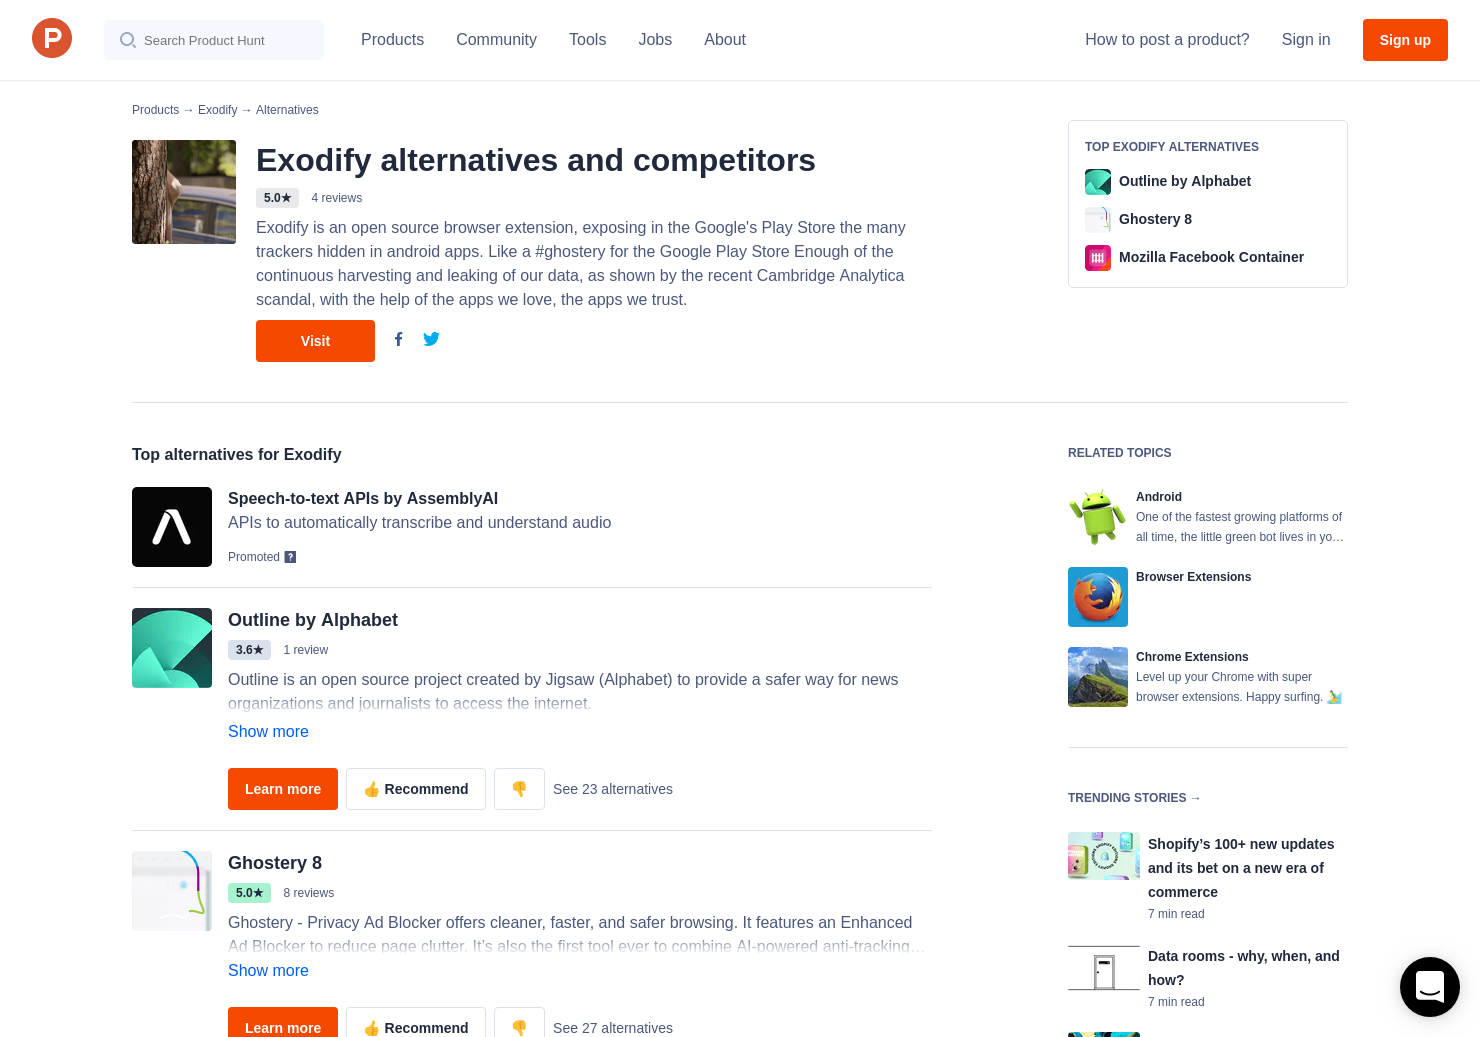 16 Alternatives to Exodify for Android, Chrome Extensions | Product Hunt